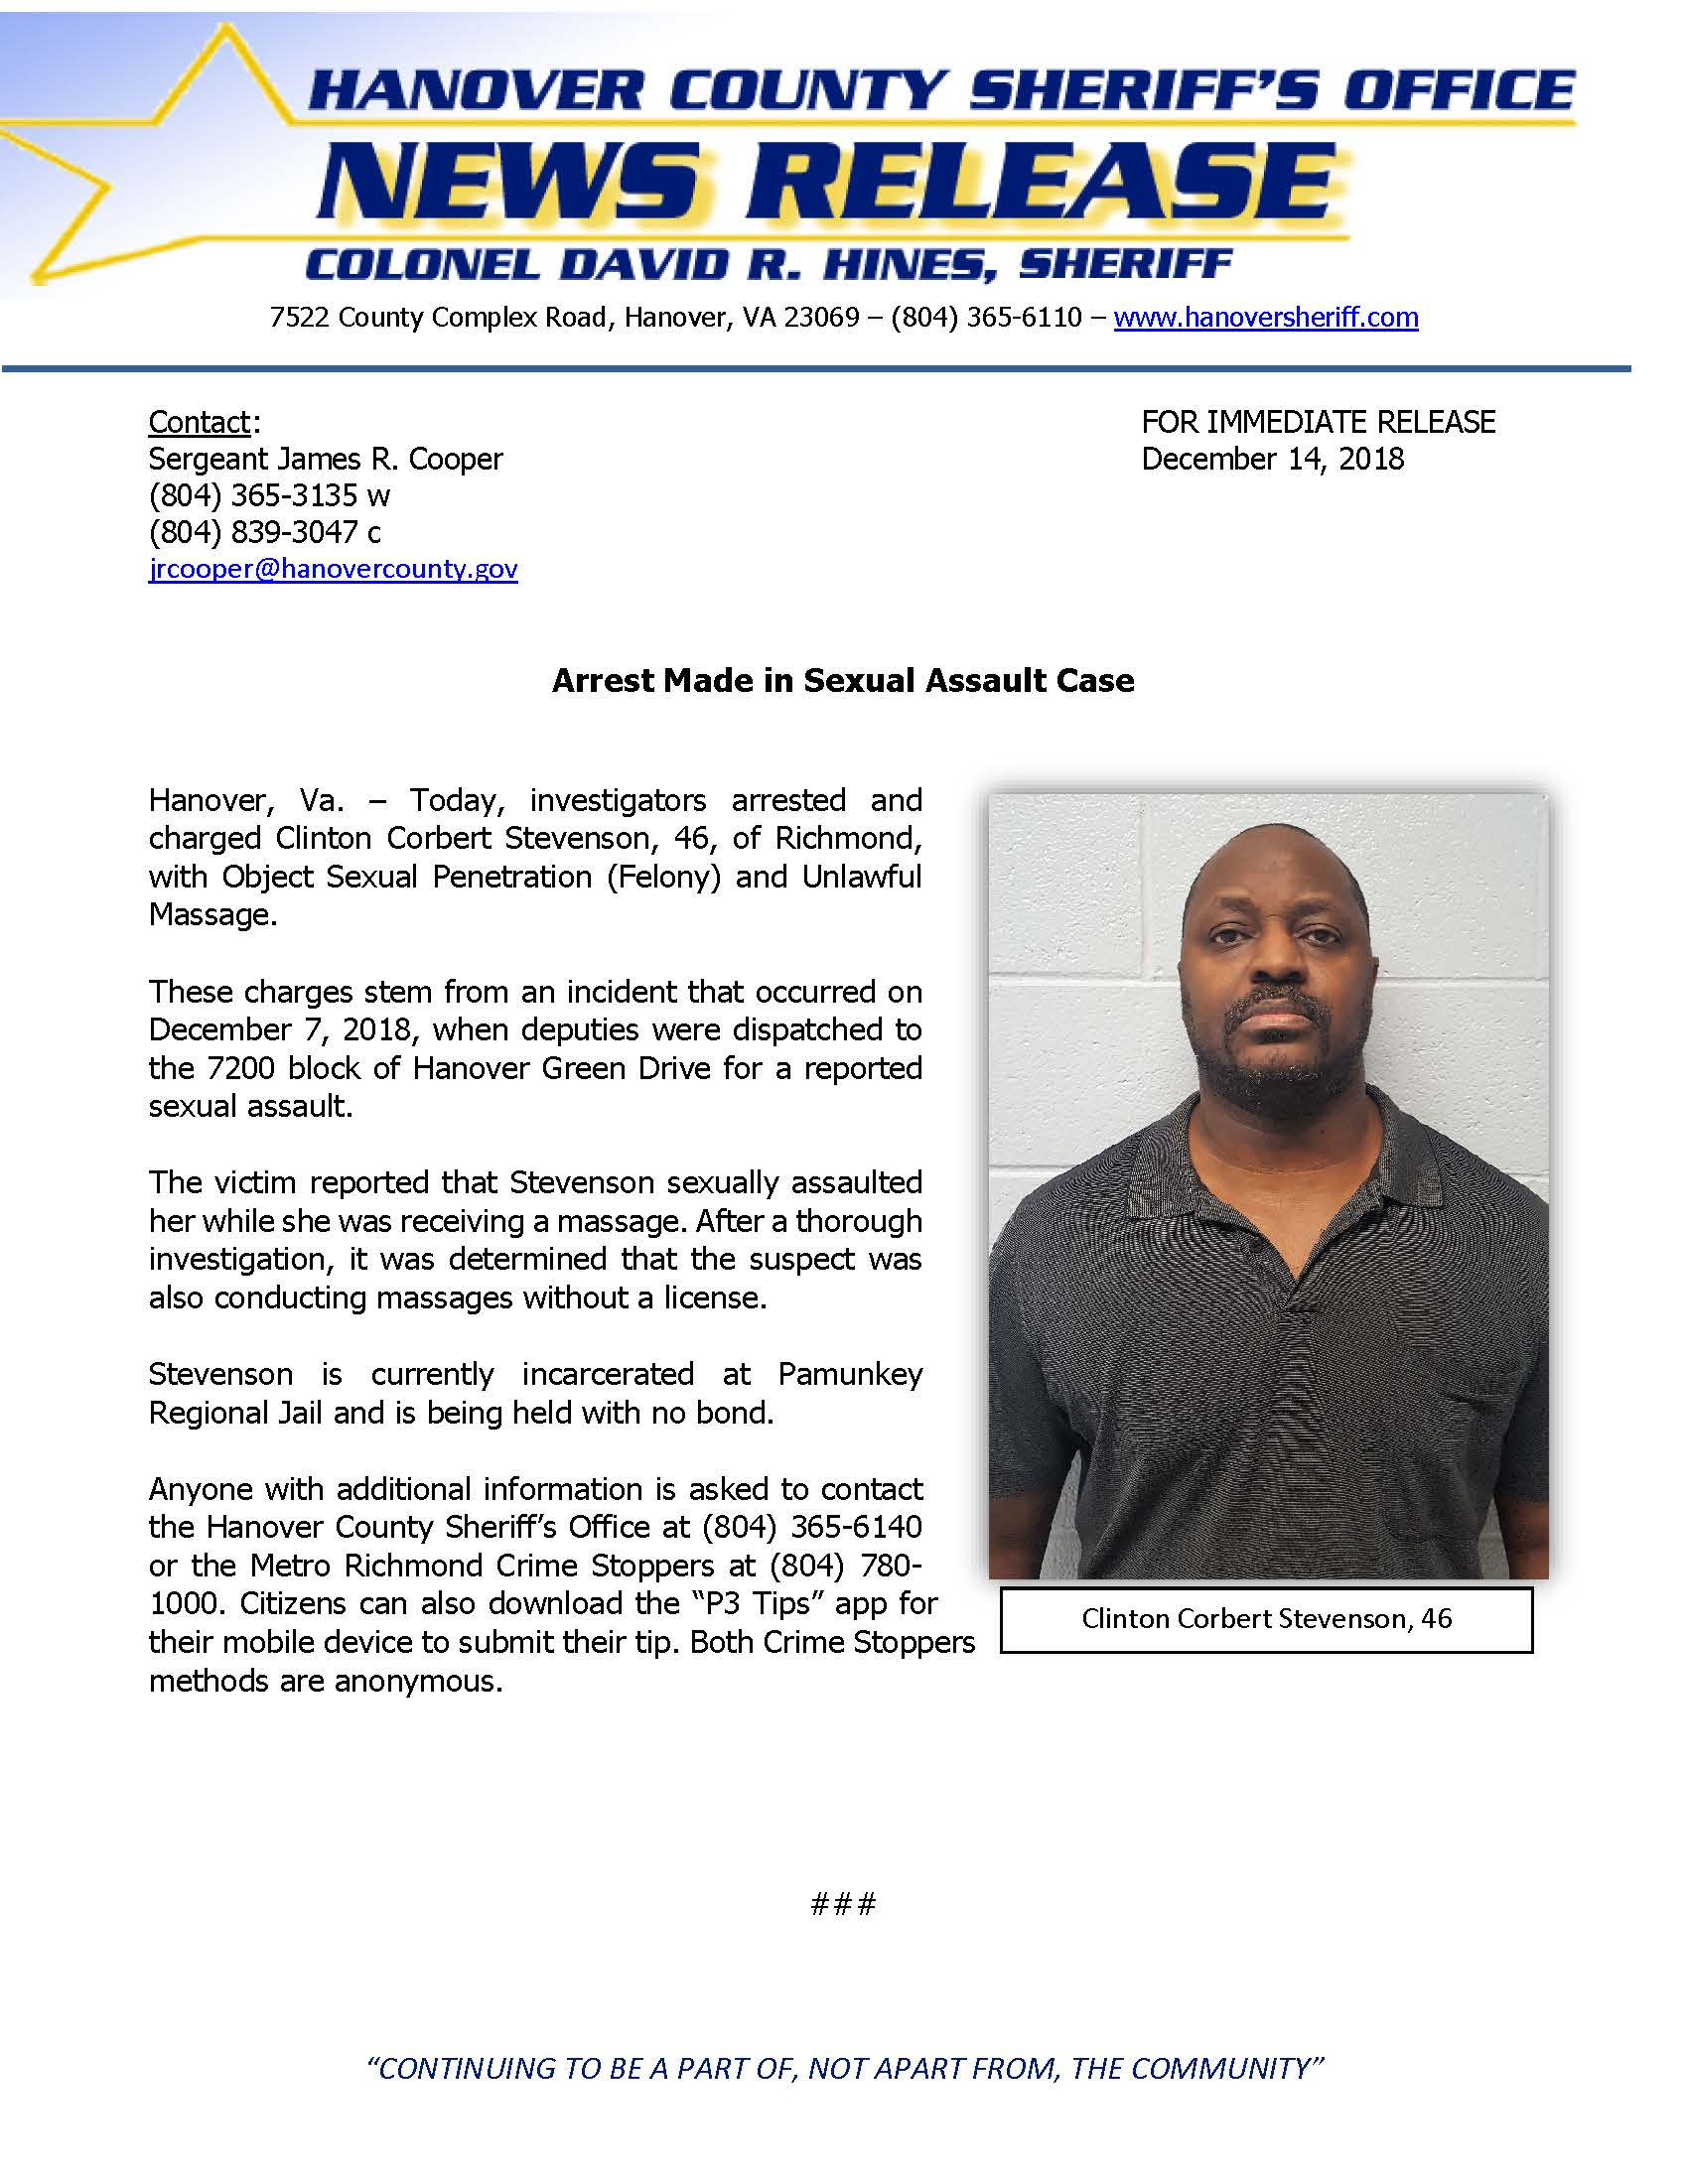 HCSO - Arrest Made in Sexual Assault Case- December 14, 2018